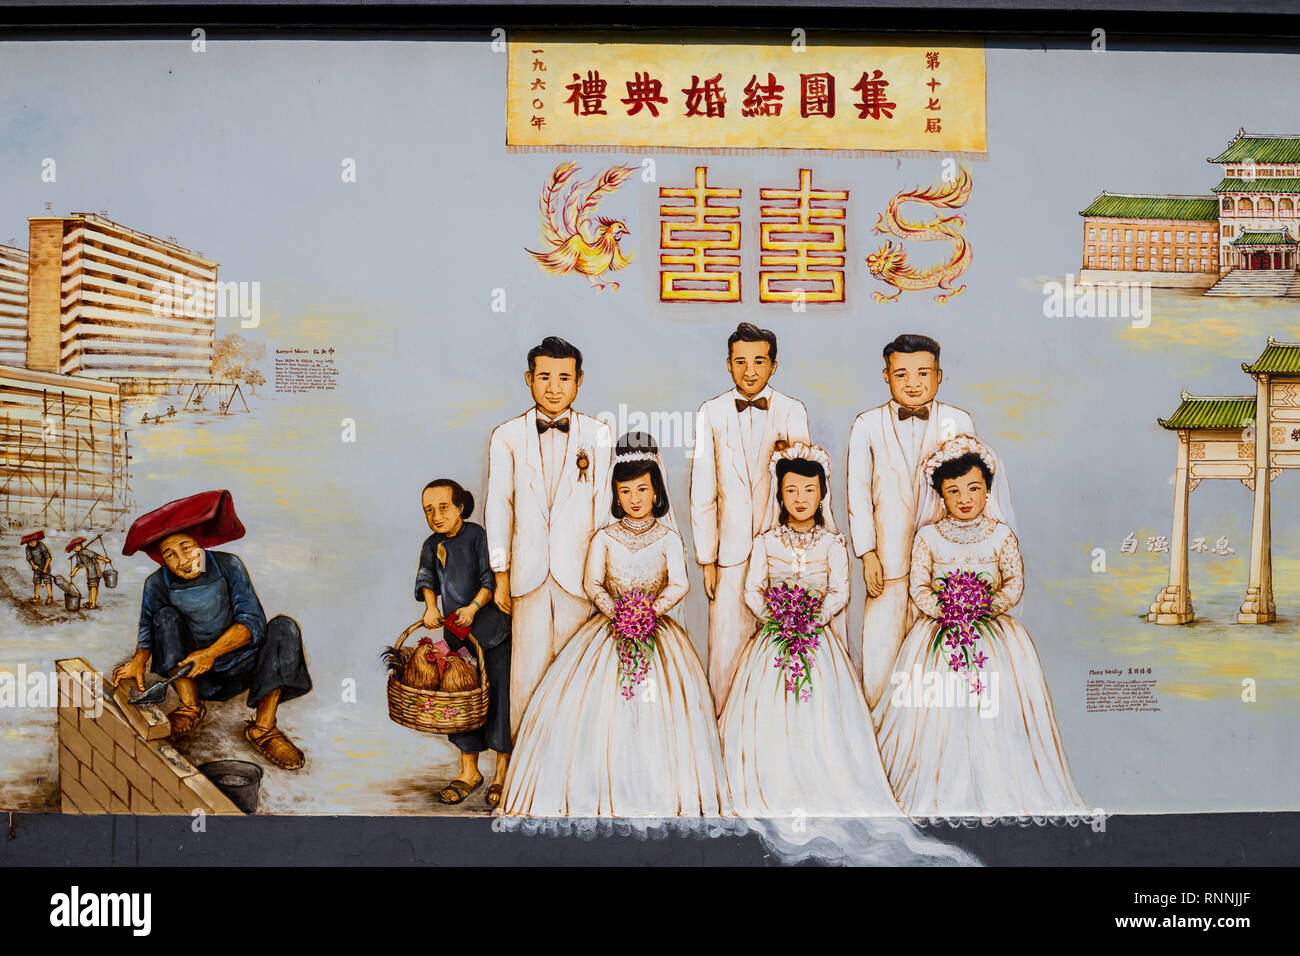 Singapore, Amoy Street Scene,  Wall Painting in Commemoration of Mass Weddings. - Stock Image